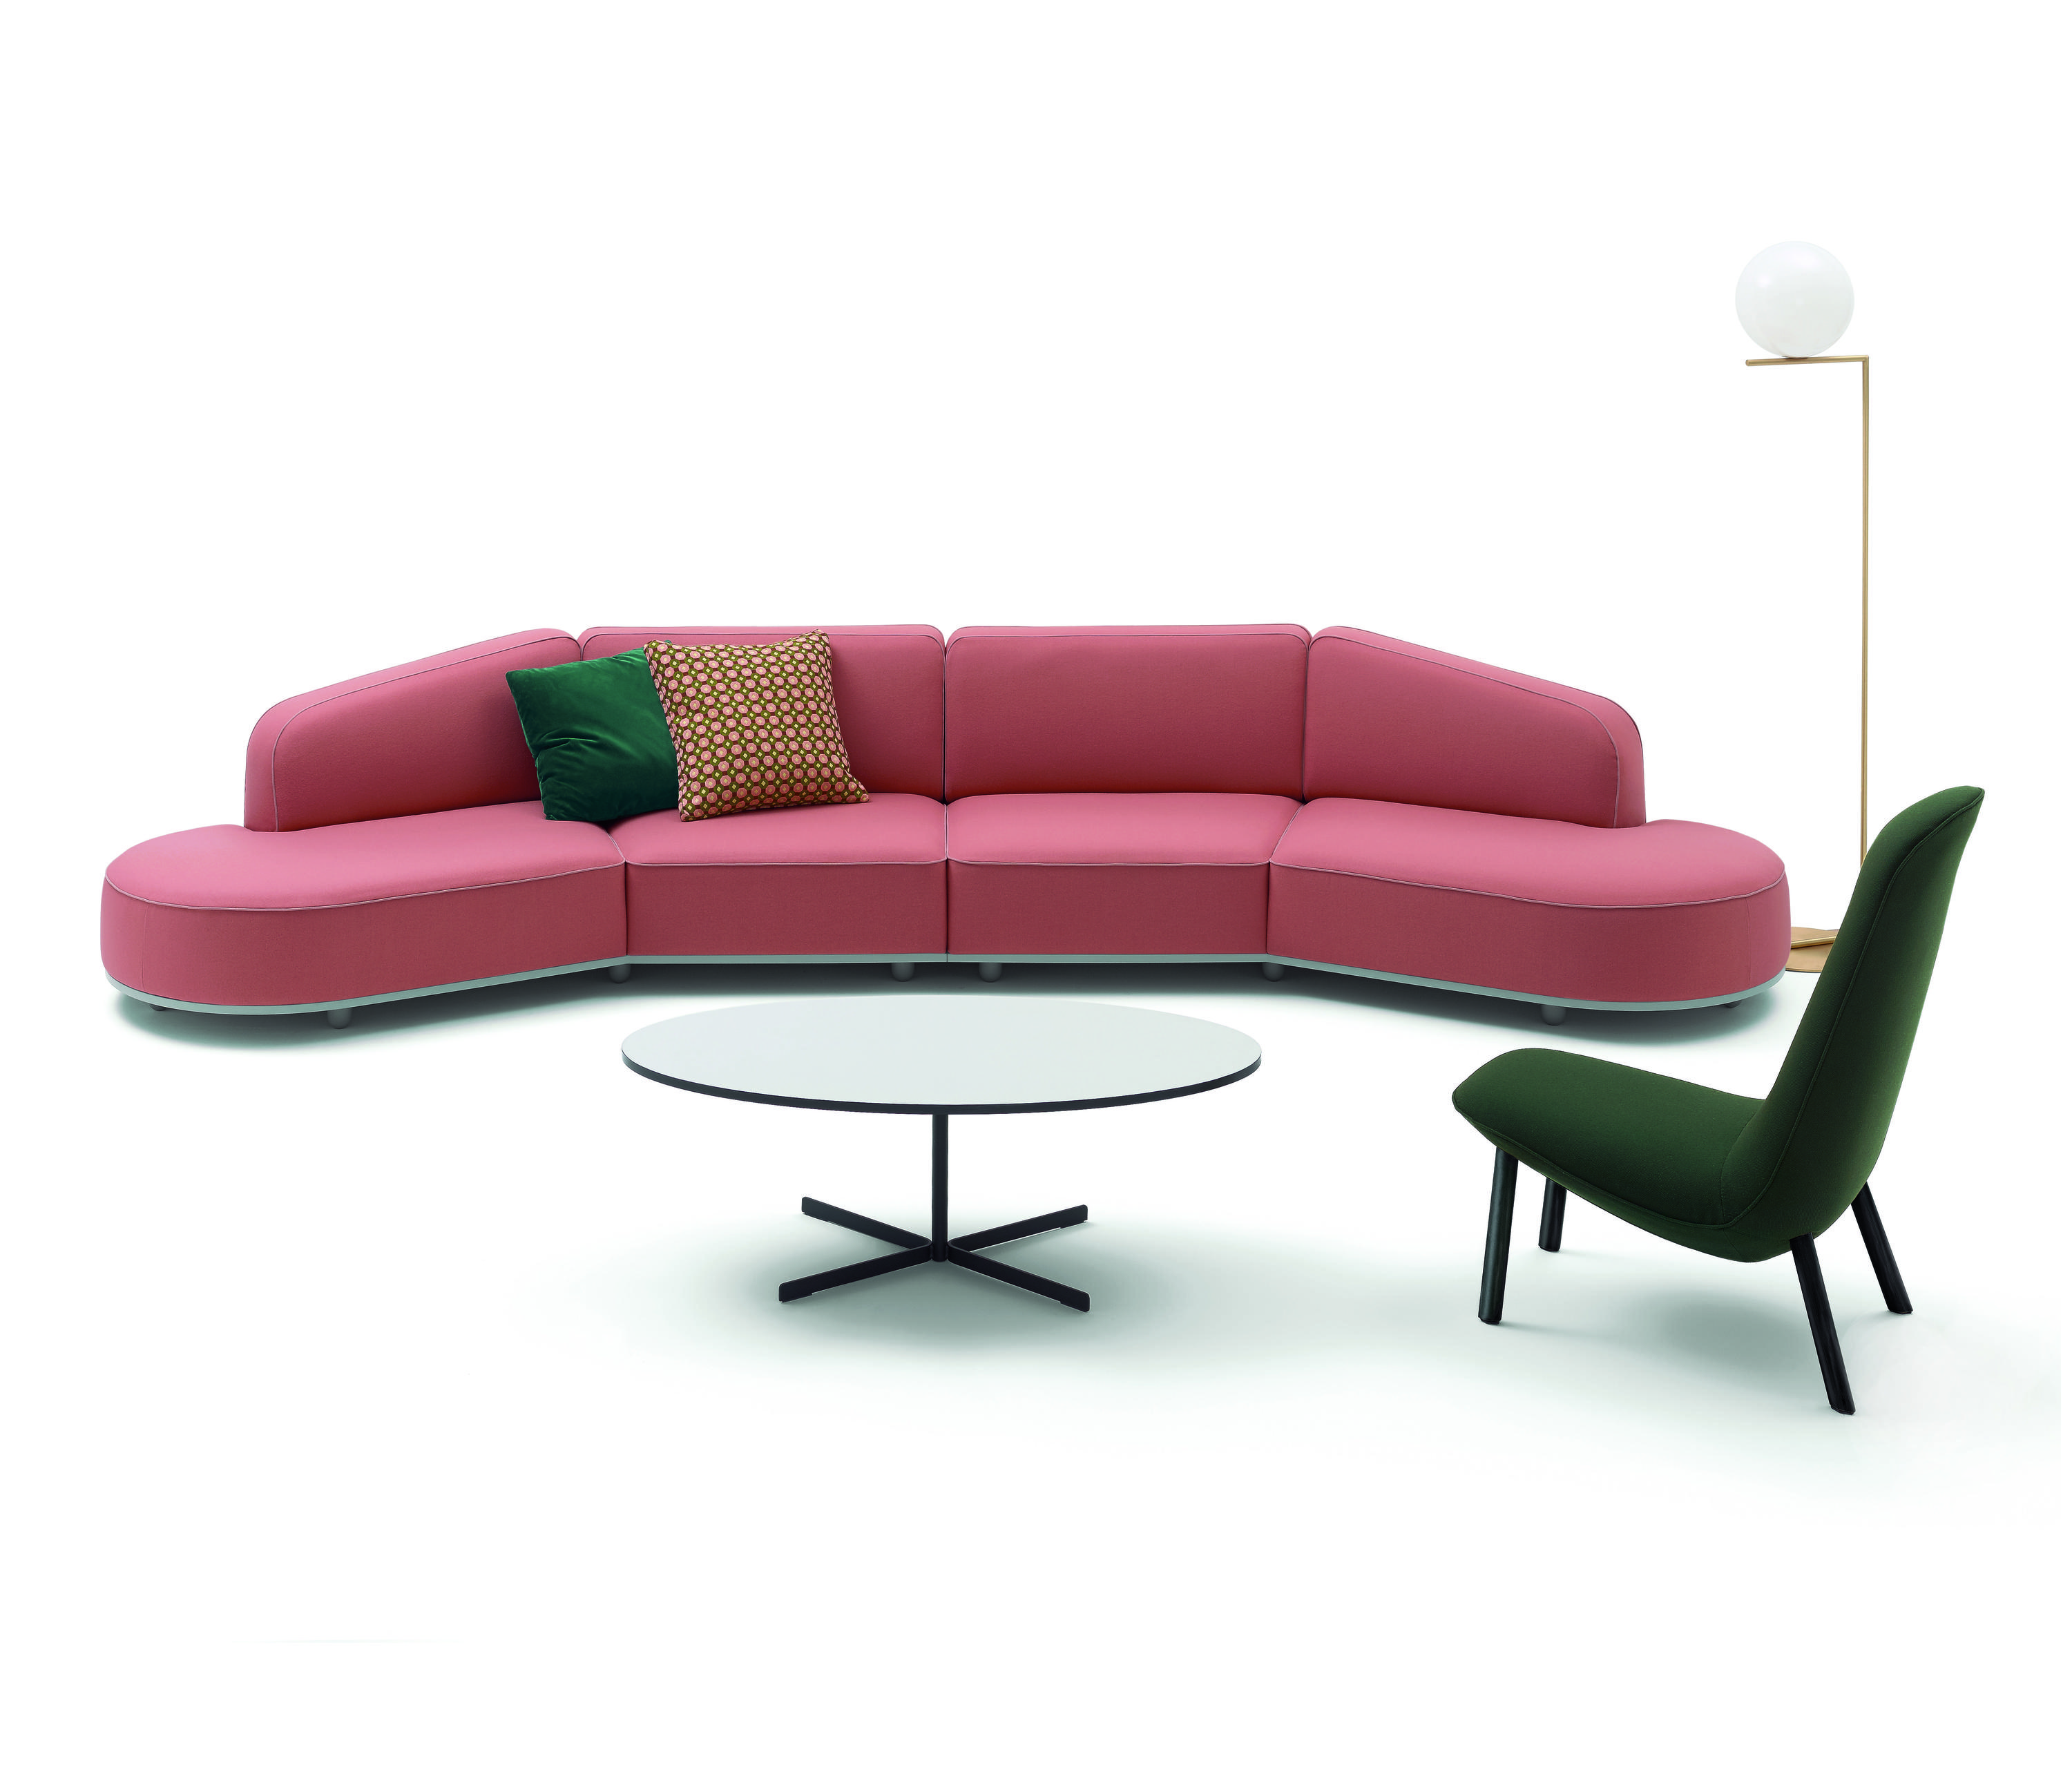 Arcolor sofa lounge sofas from arflex architonic for Sofas modulares precios